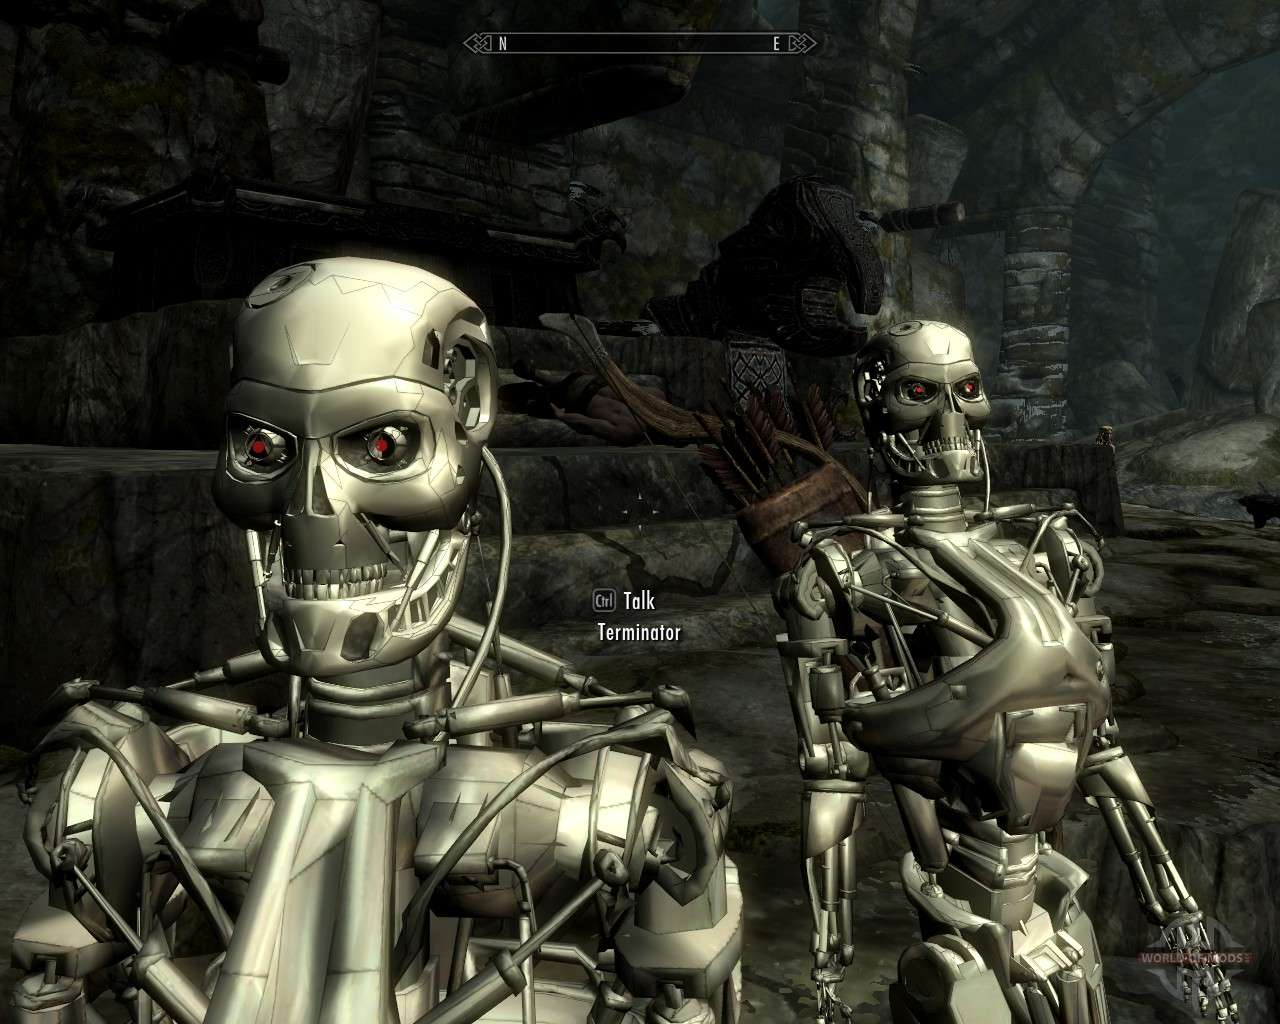 Warpaint for all races skyrim mods